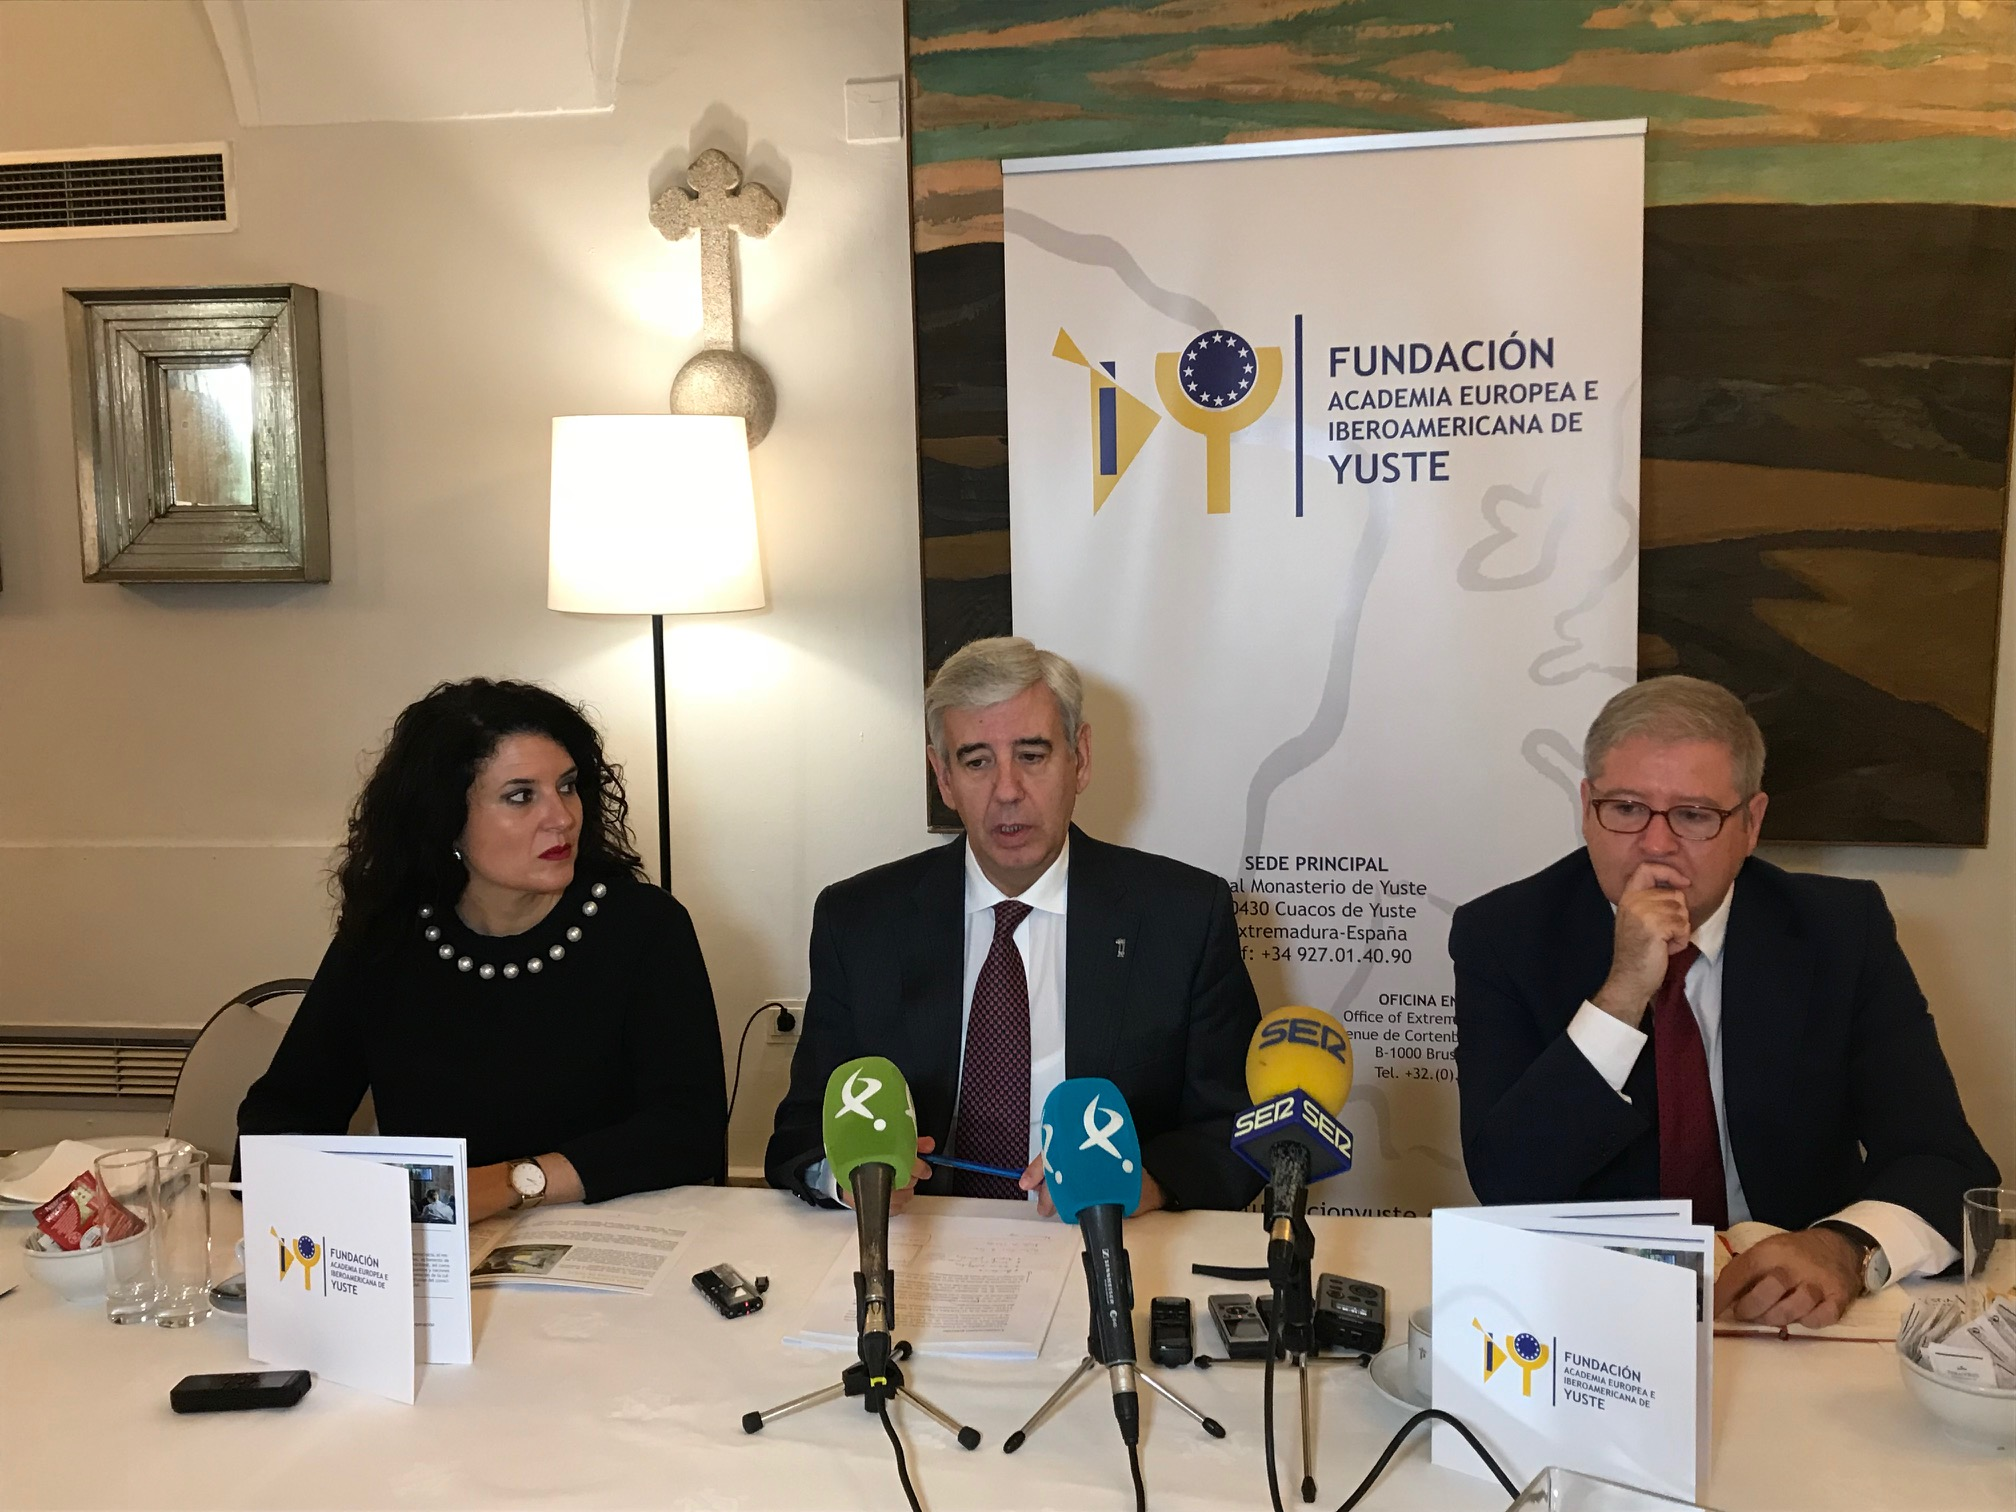 The European and Ibero-American Academy of Yuste Foundation will contribute to the promotion and consolidation of the links between Extremadura, Europe and Ibero-America